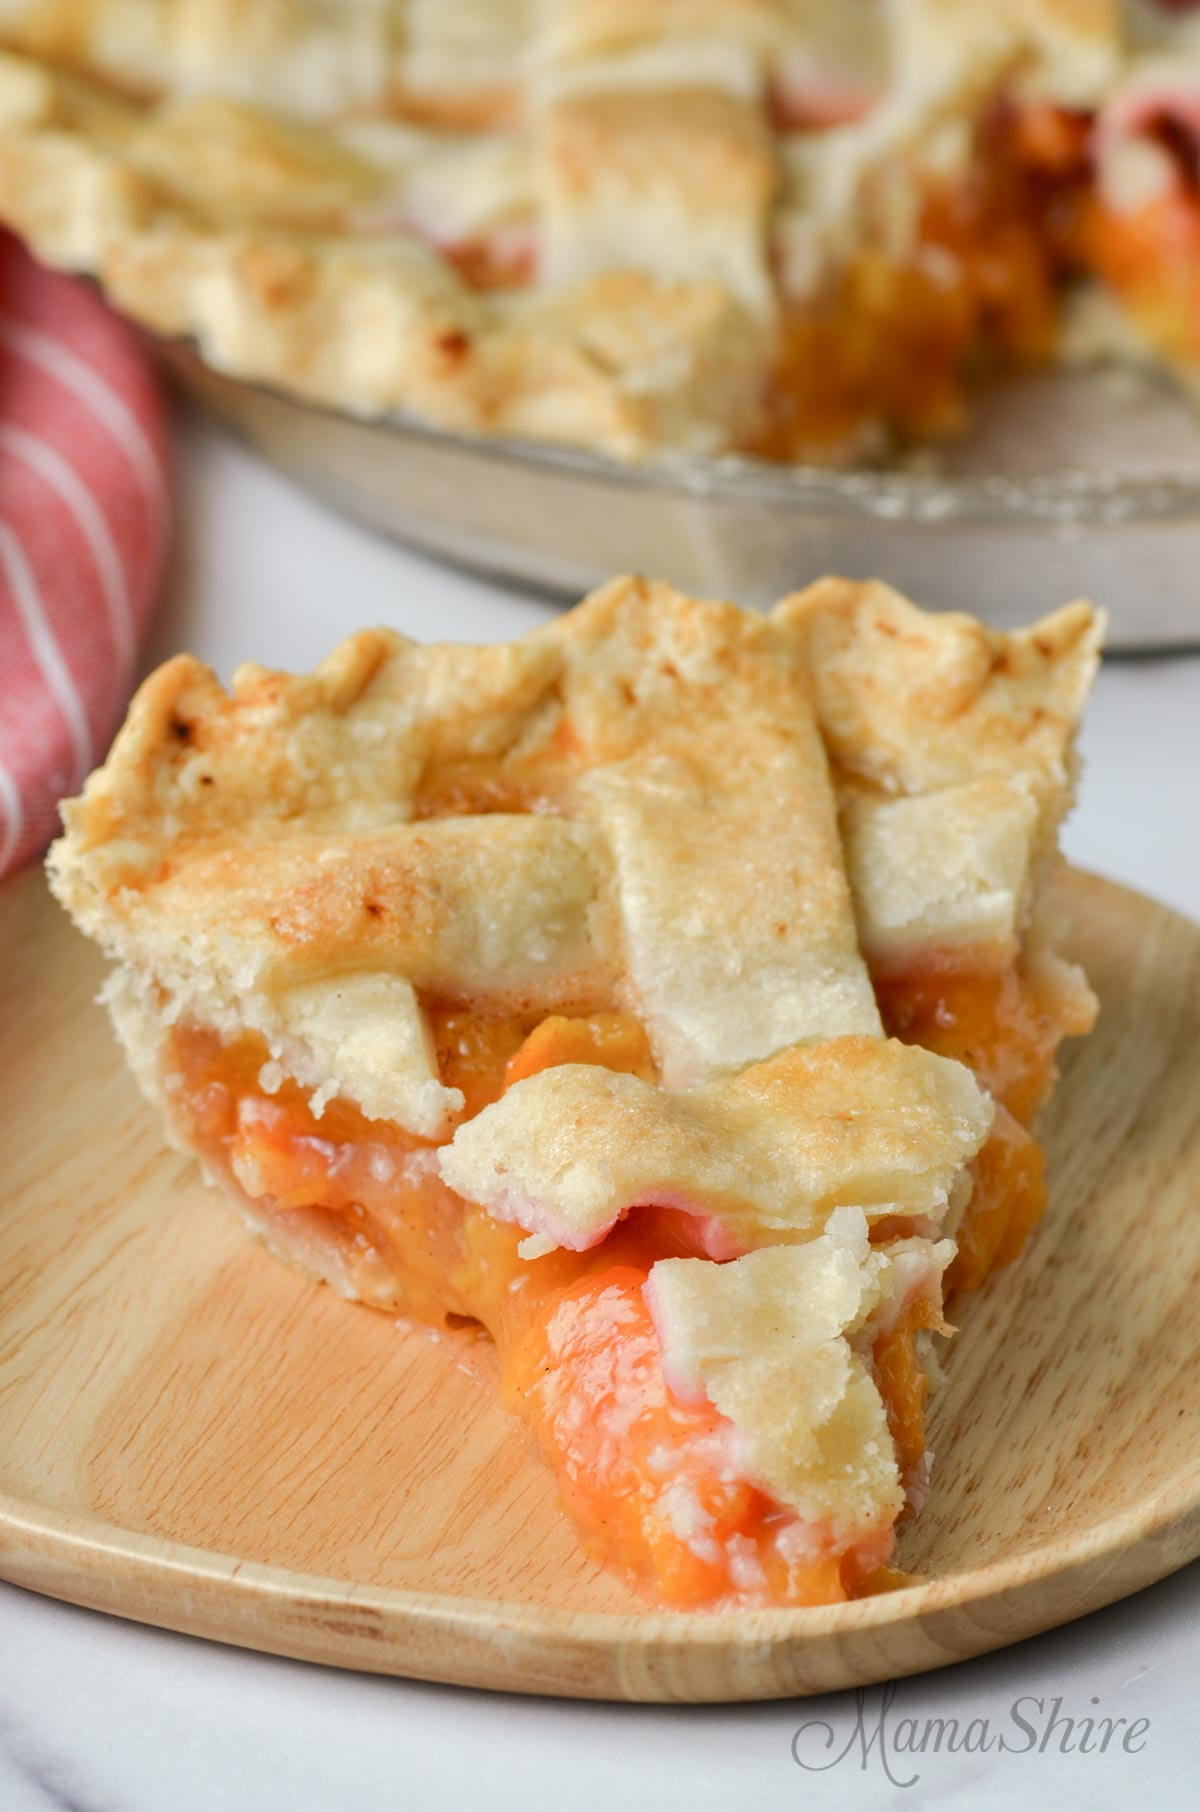 A nice big slice of gluten-free peach pie.